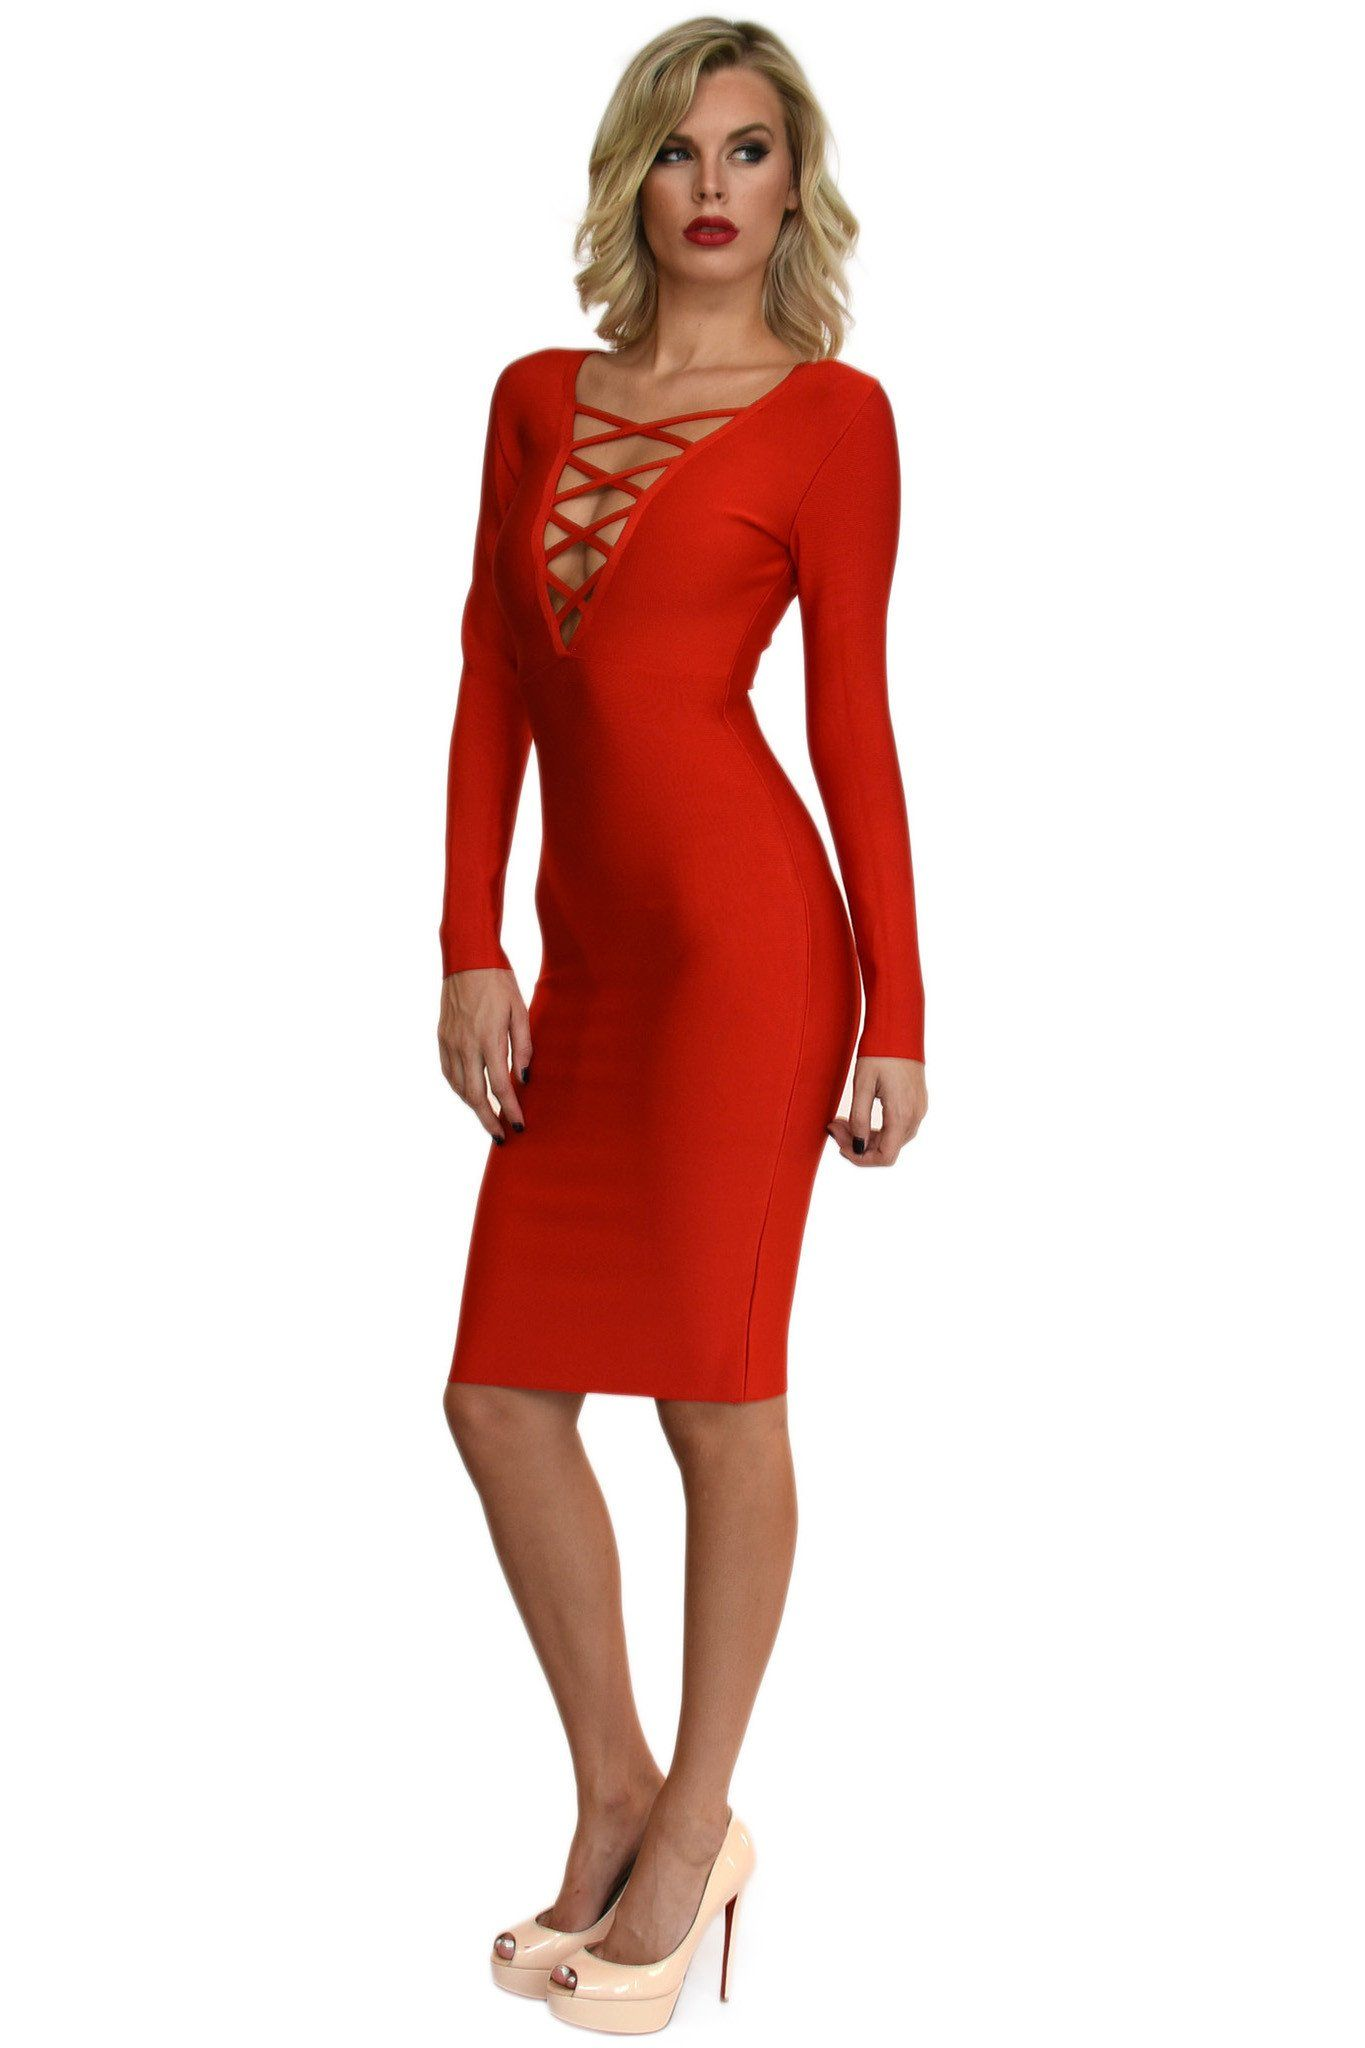 a7234eea Front of red long sleeve bandage dress with v neck lace up front details